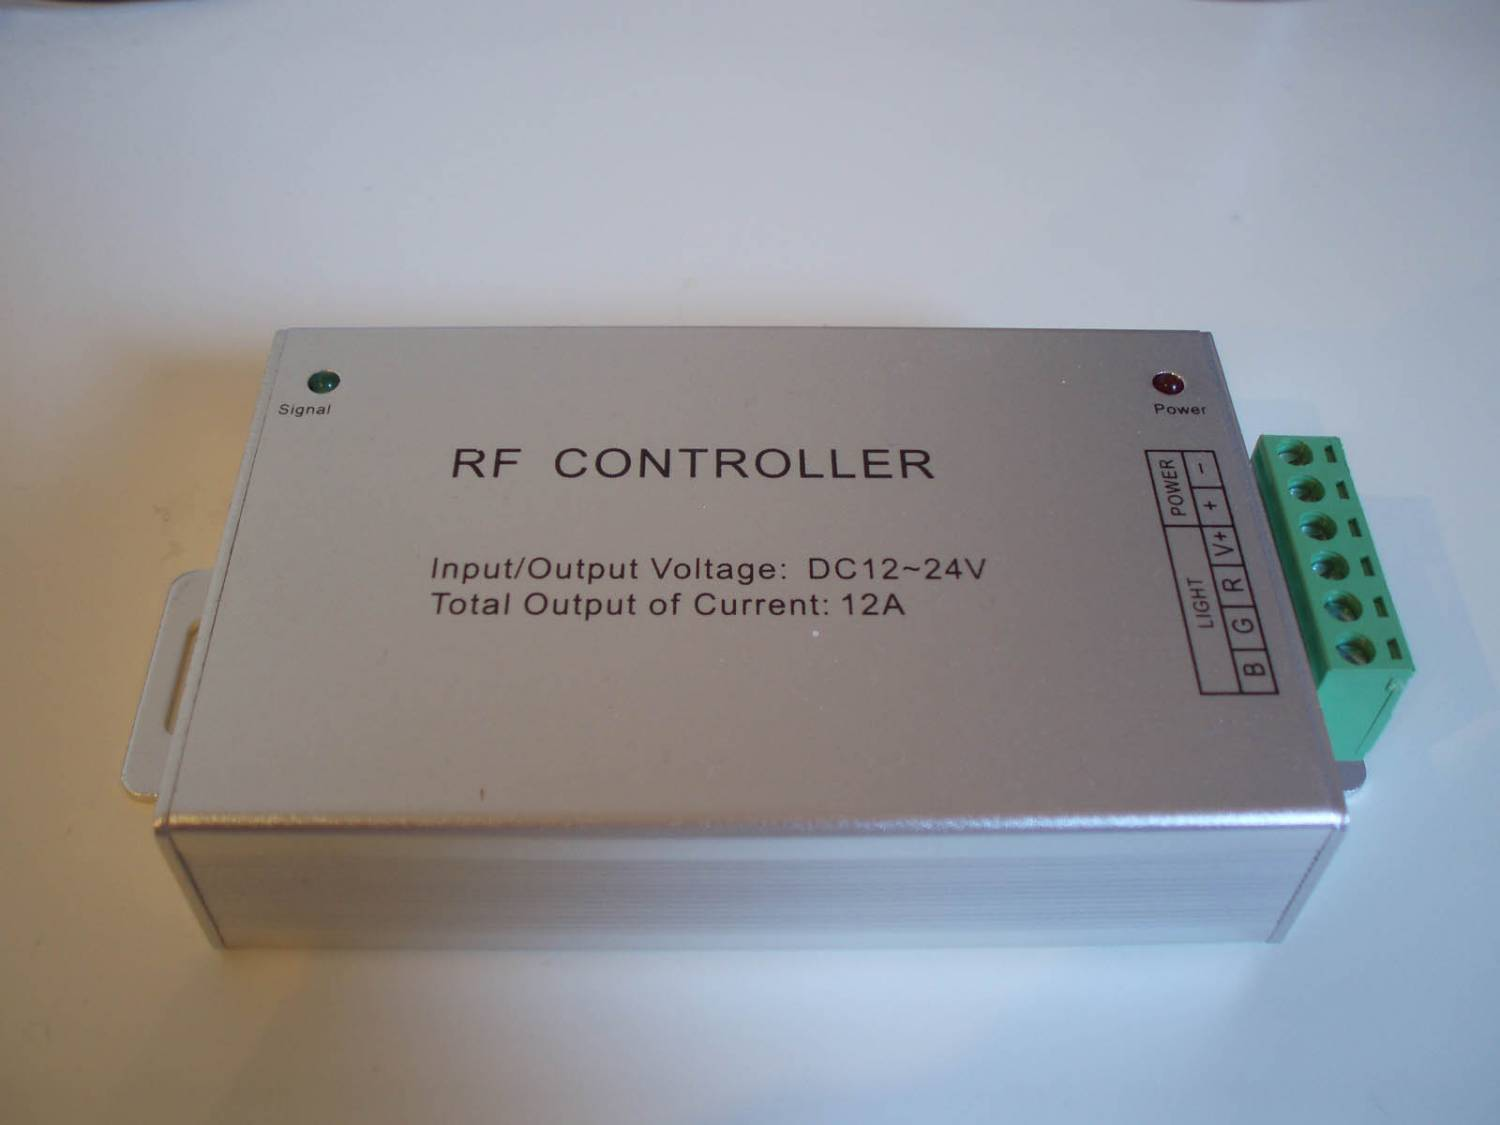 RGB-WW Controller with Remote